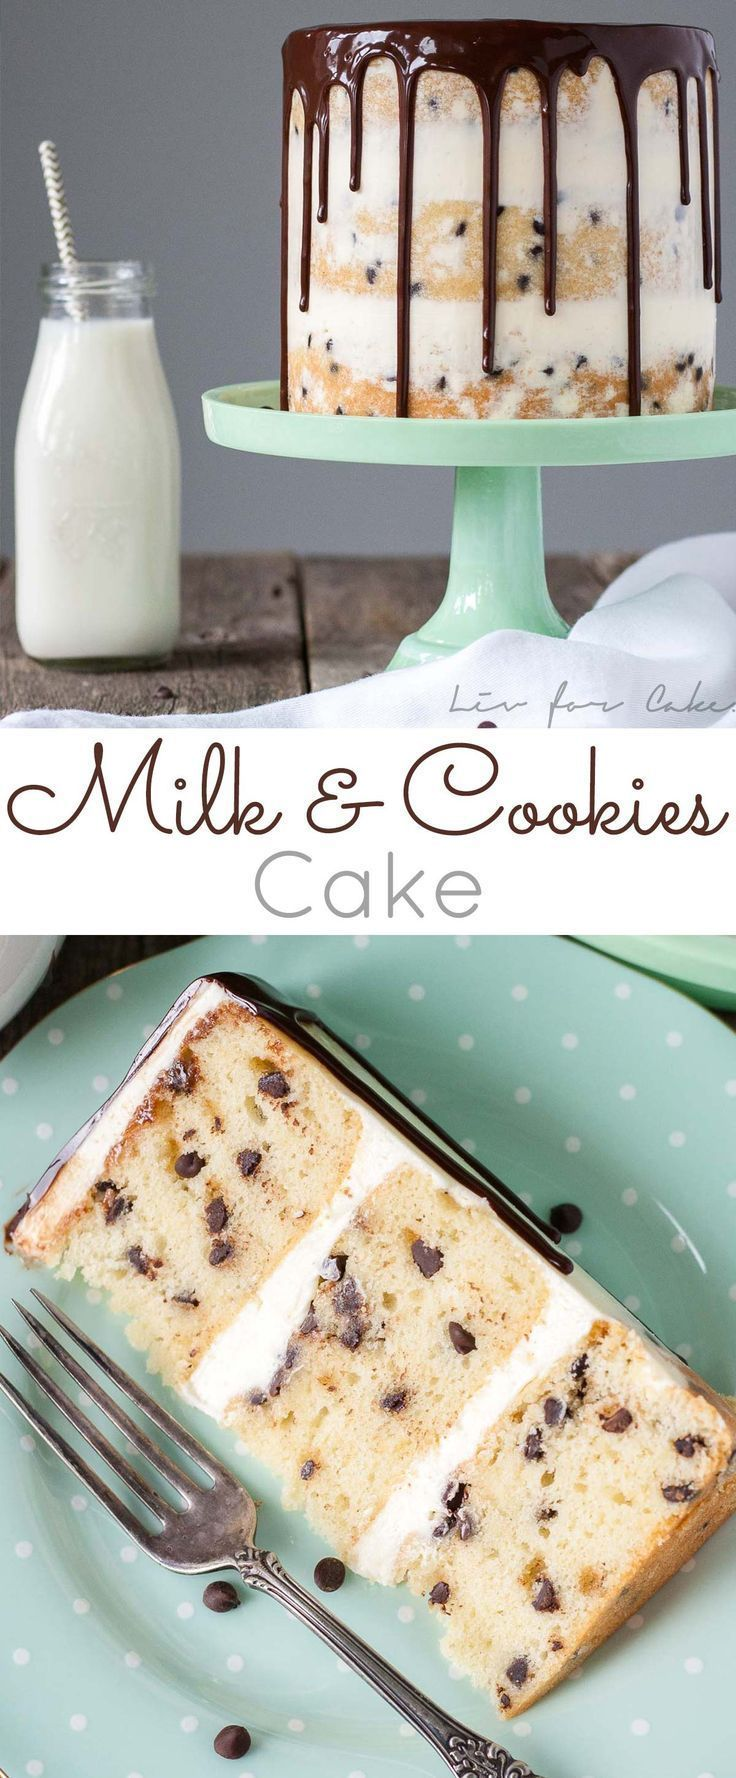 Milk & Cookies Cake! A childhood favorite gets an extreme makeover into this decadent Milk & Cookies Cake!   livforcake.com